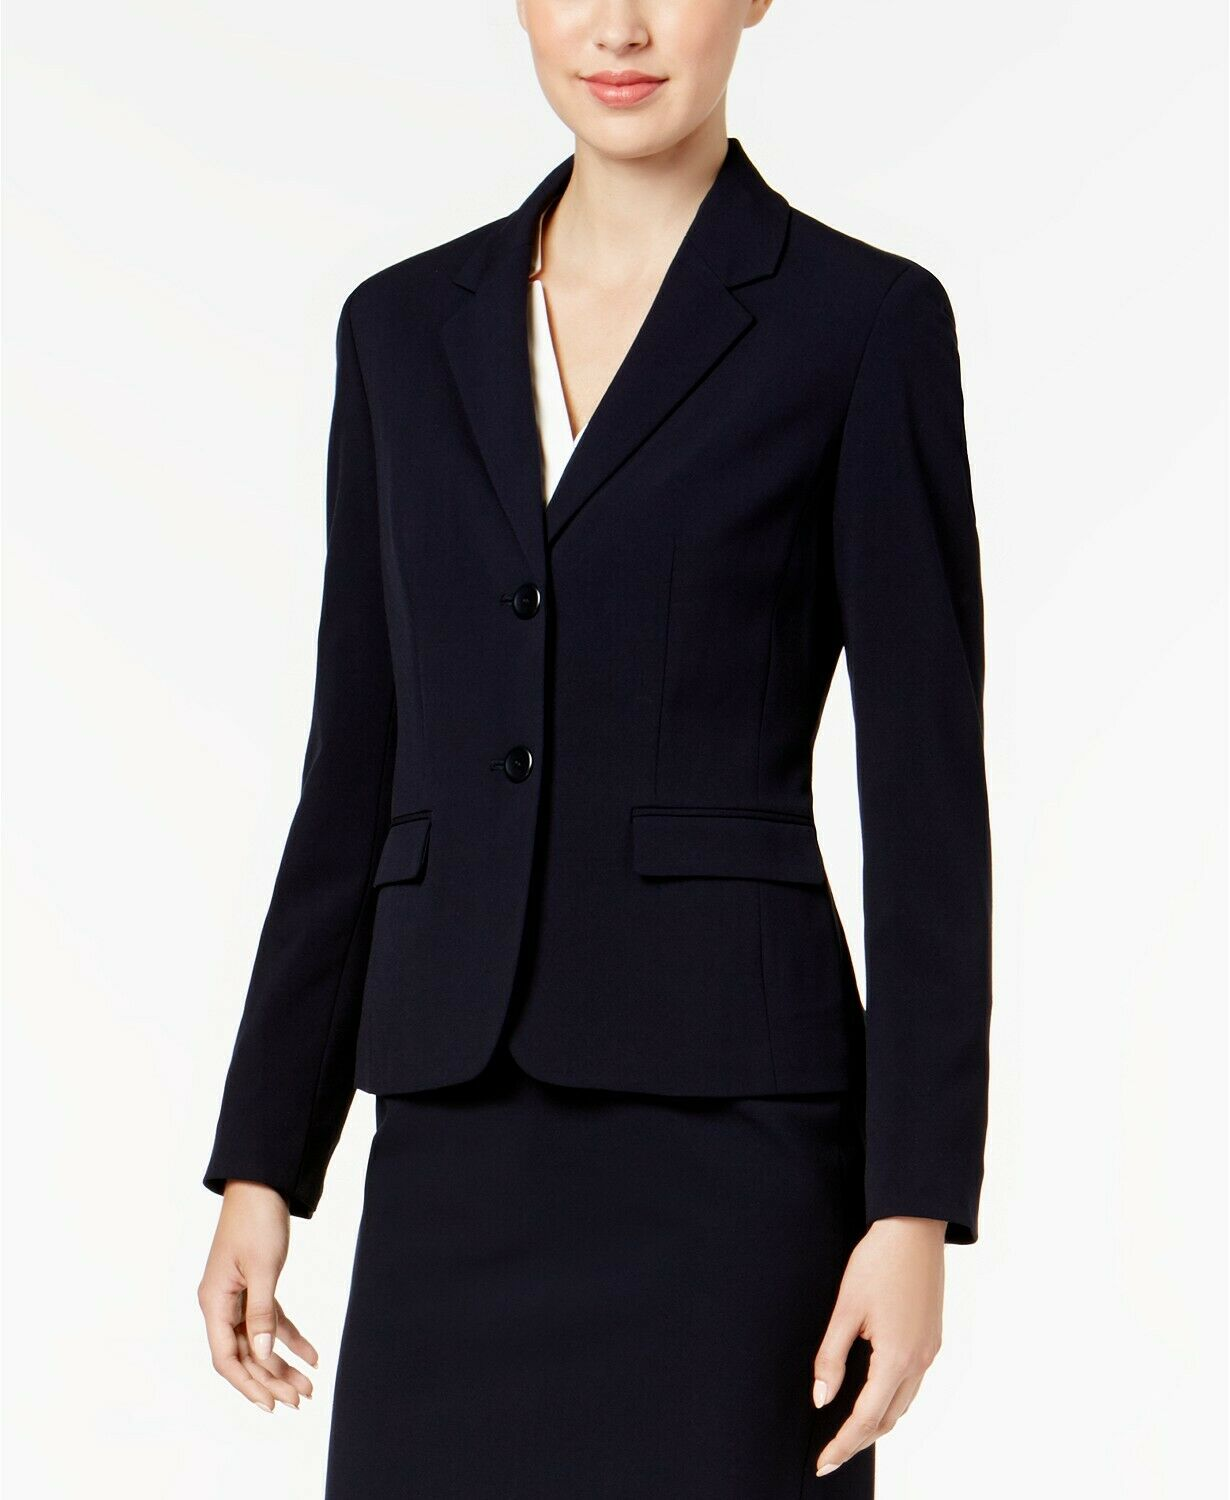 NINE WEST WOMEN'S blueE BUTTON FRONT NOTCHED COLLAR CAREER BLAZER SIZE 12